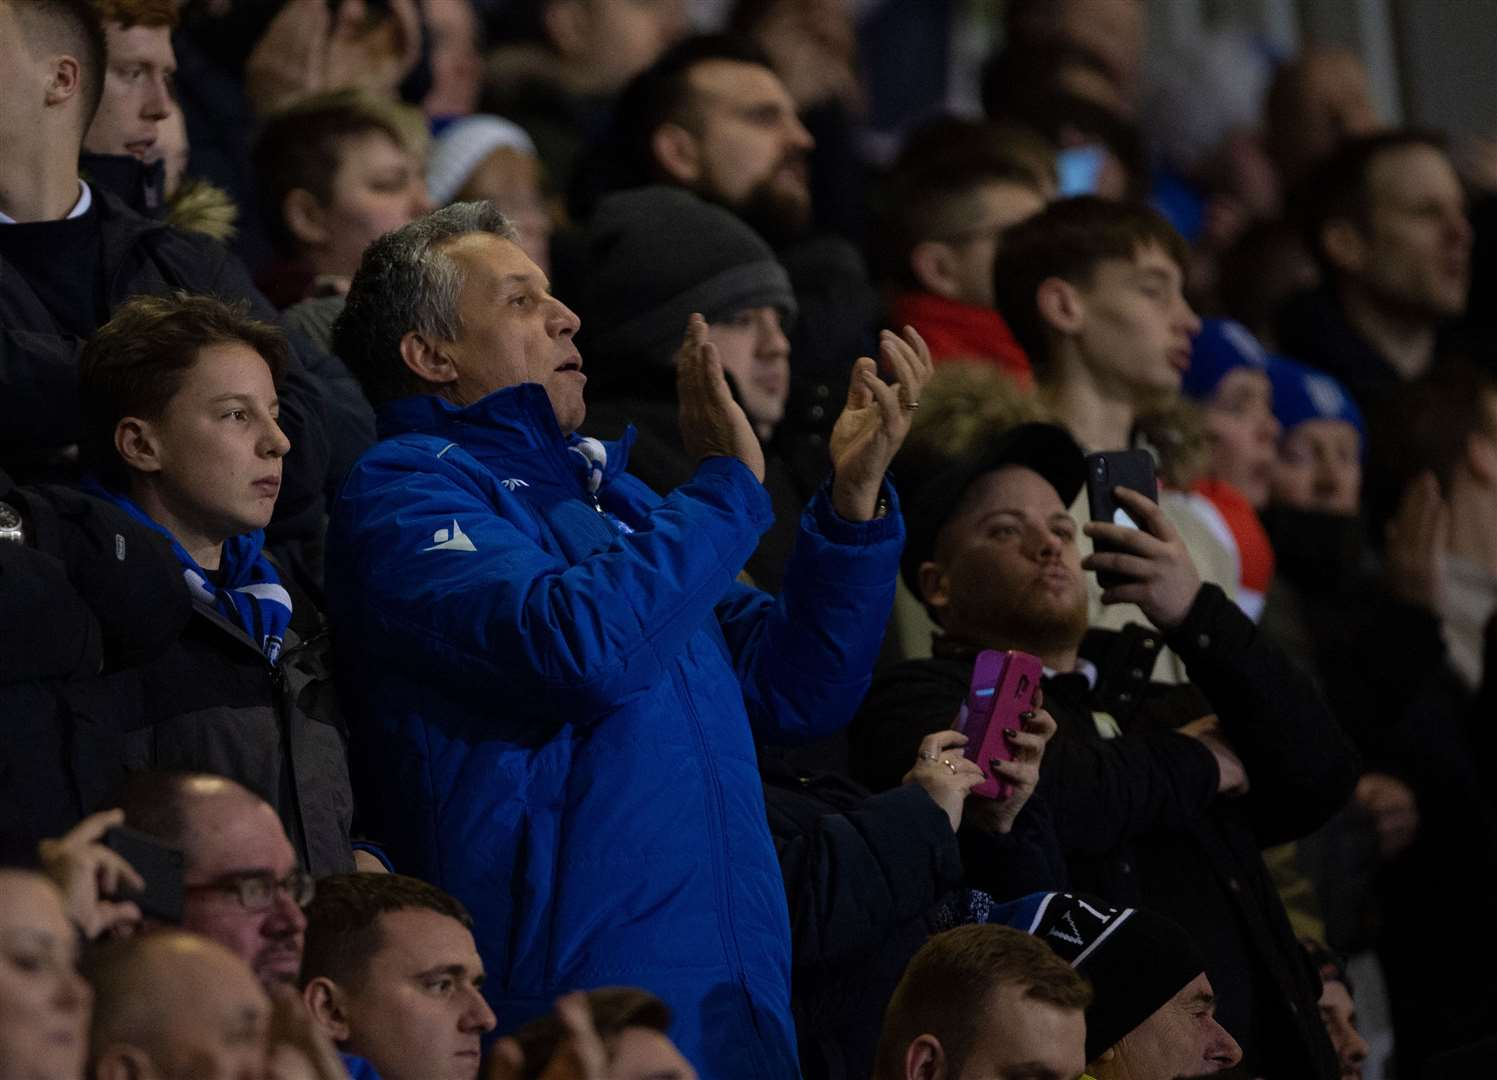 Gillingham are planning as normal for this weekend's game against Fleetwood Town